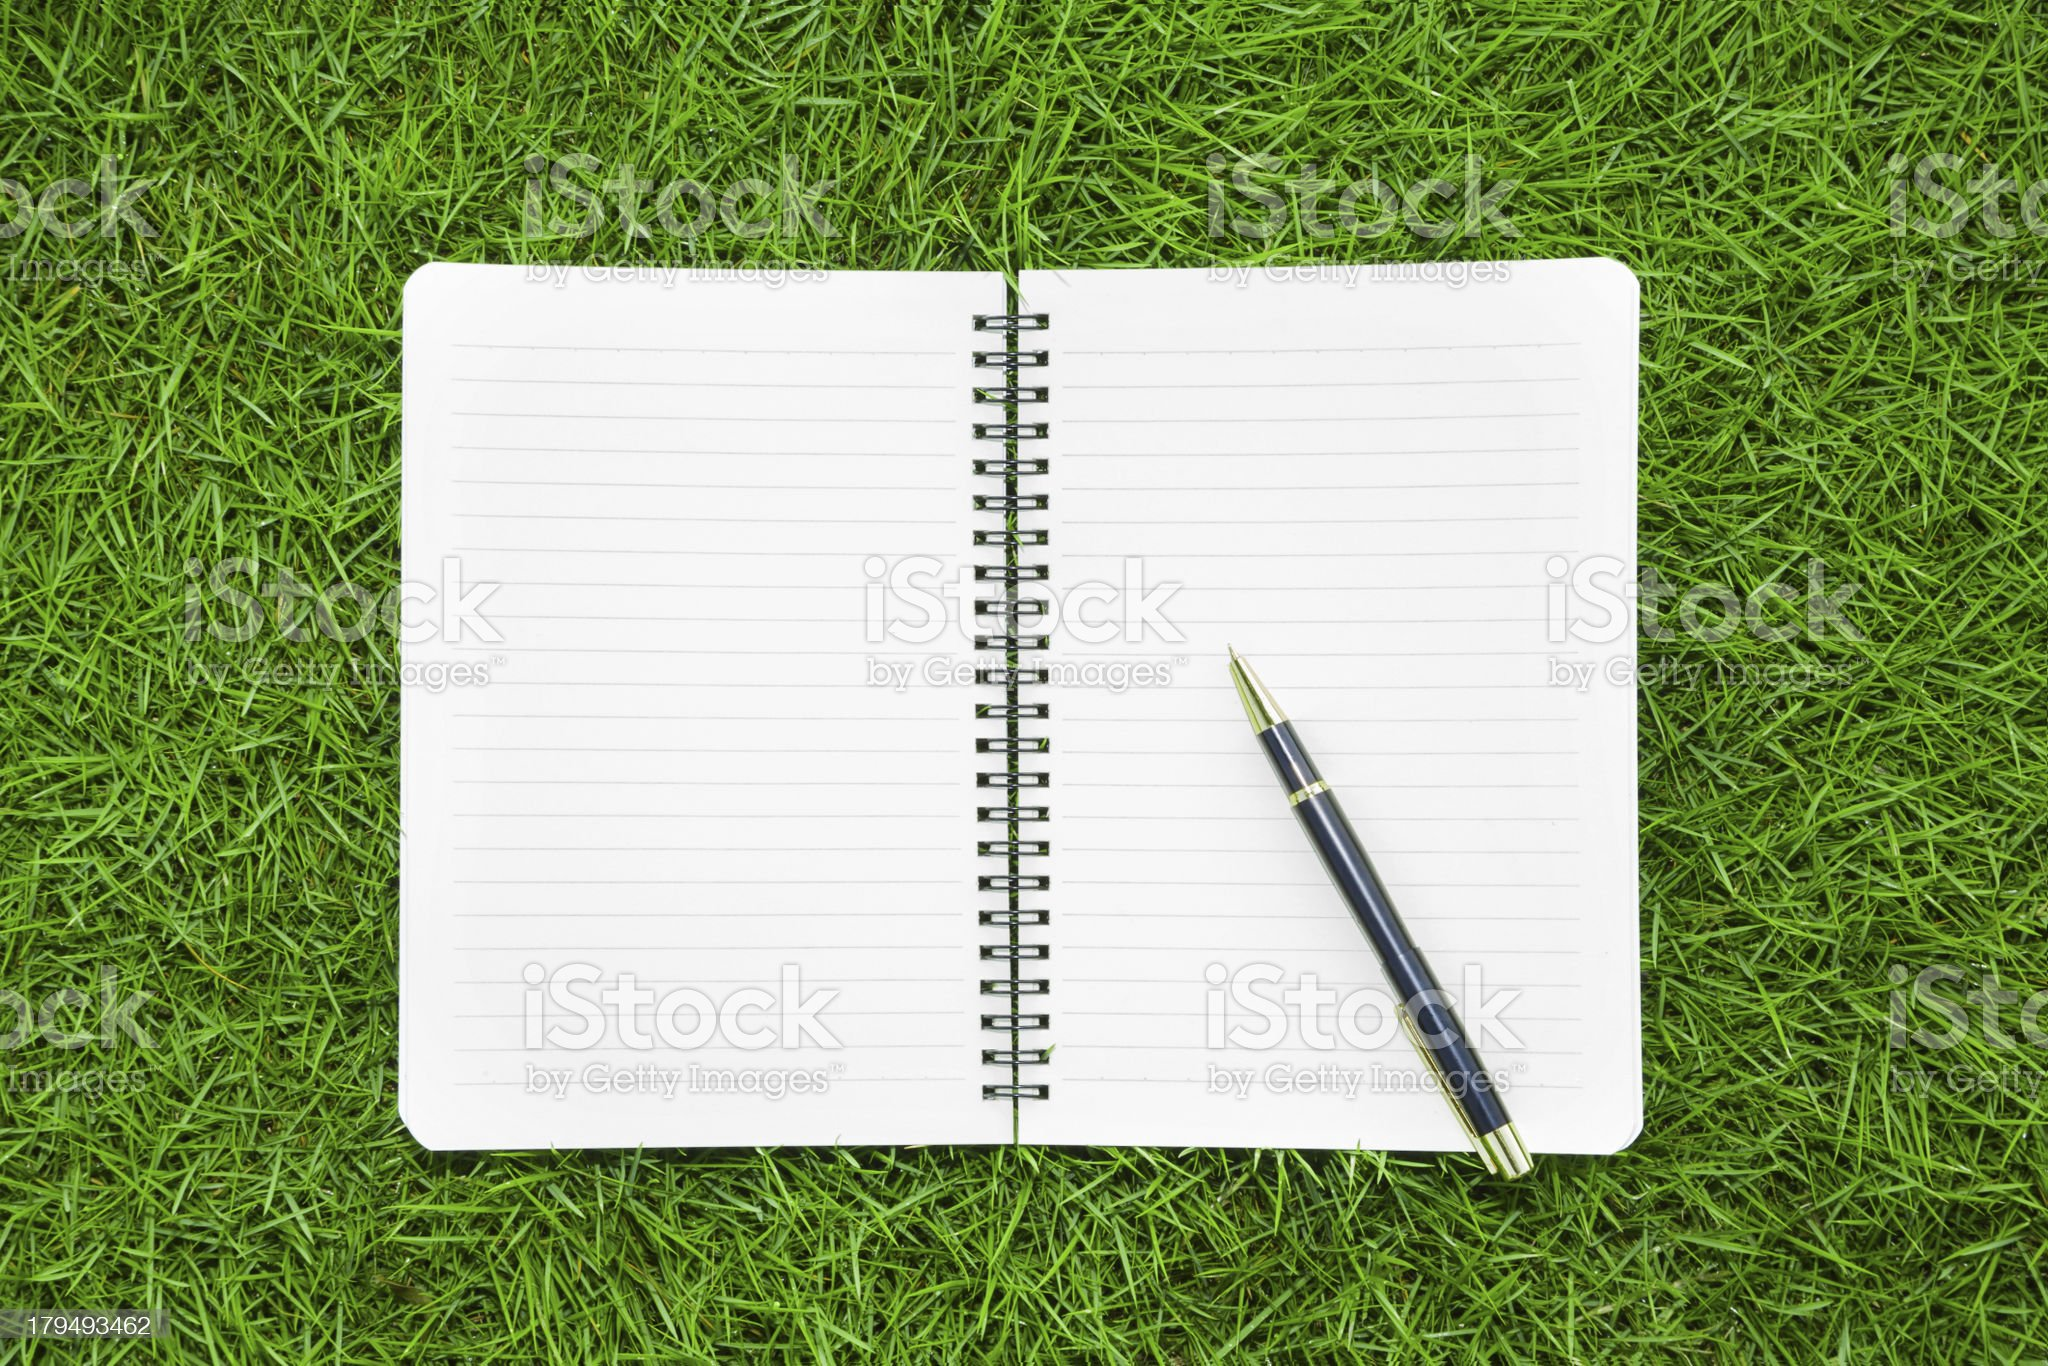 working in nature:Notebook and pen on grass background royalty-free stock photo